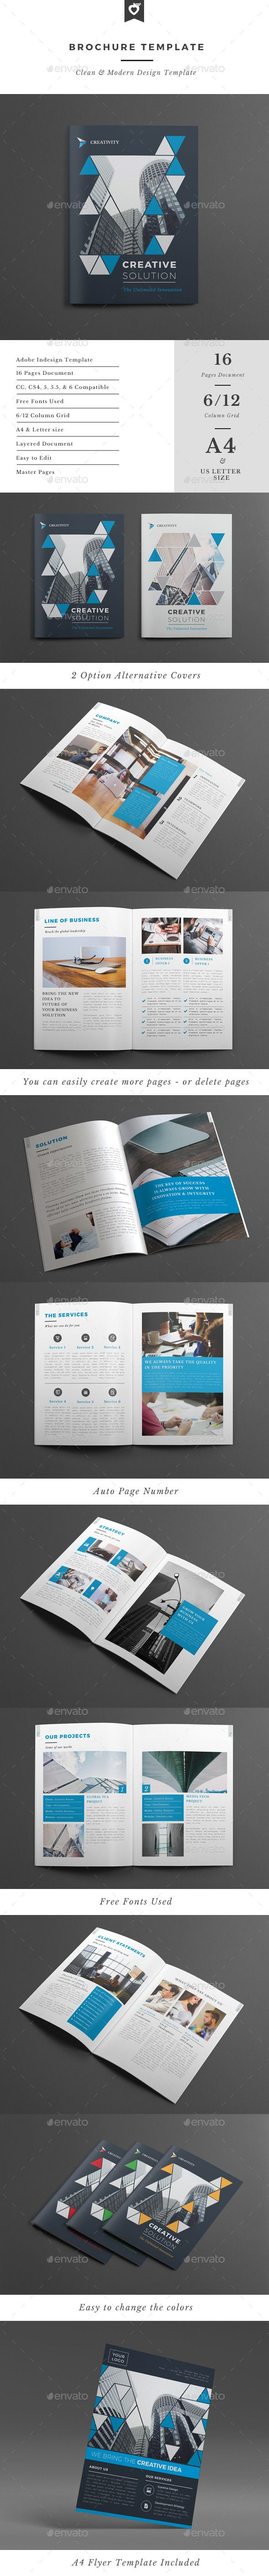 Multipurpose Brochure Adobe Indesign Template #design Download: http://graphicriver.net/item/brochure-template/12775521?ref=ksioks